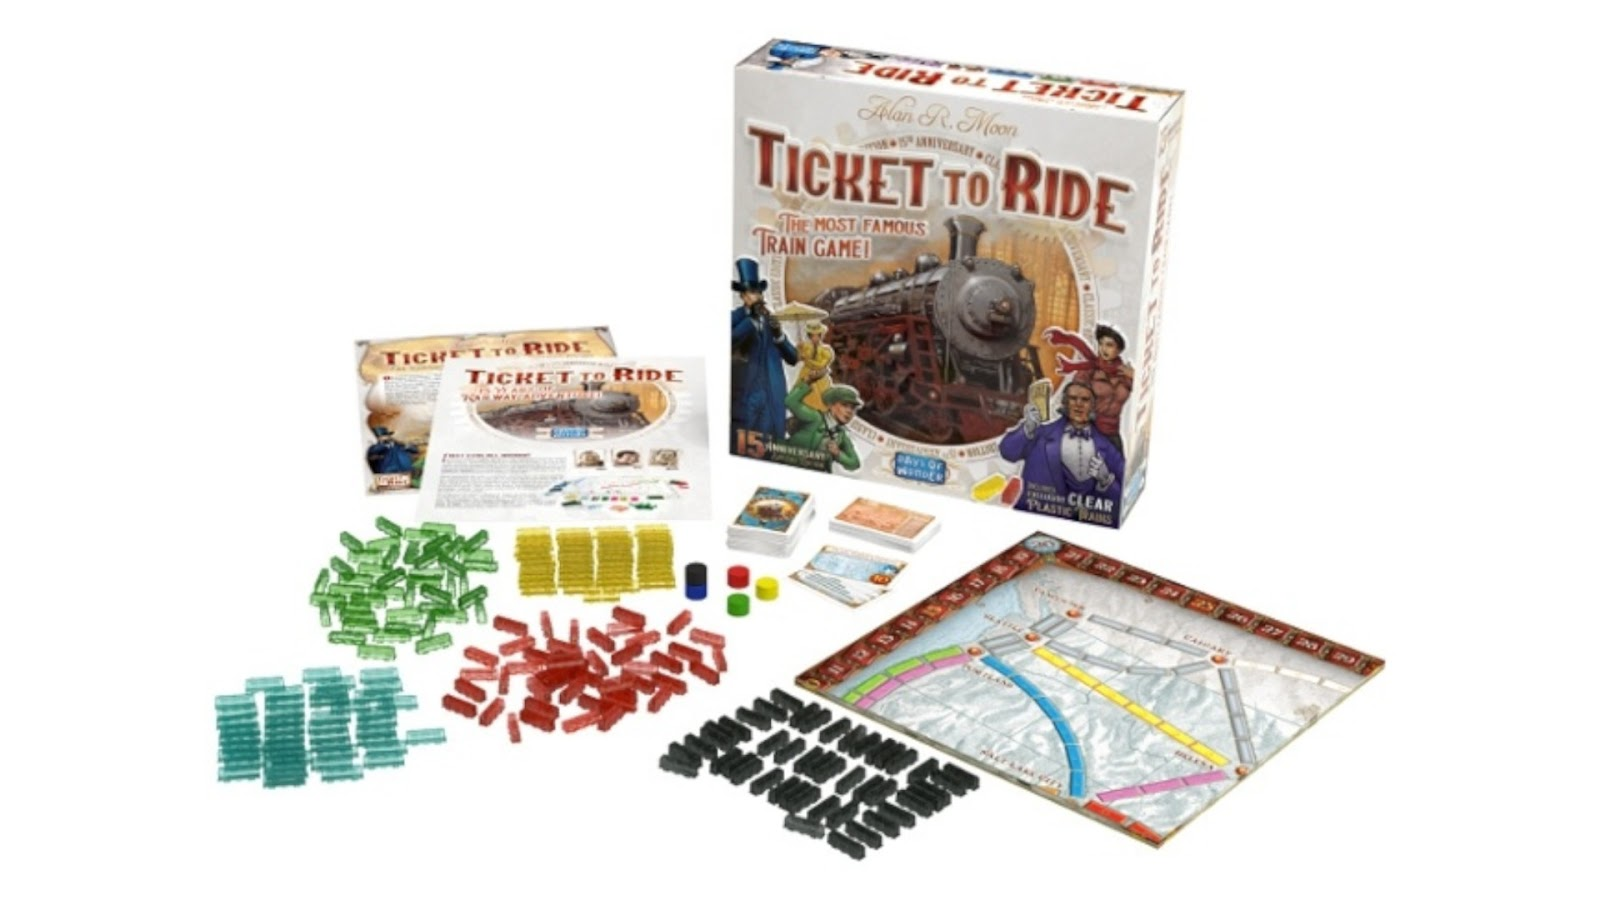 News Collider Board Game News Ticket To Ride 15th anniversary special edition